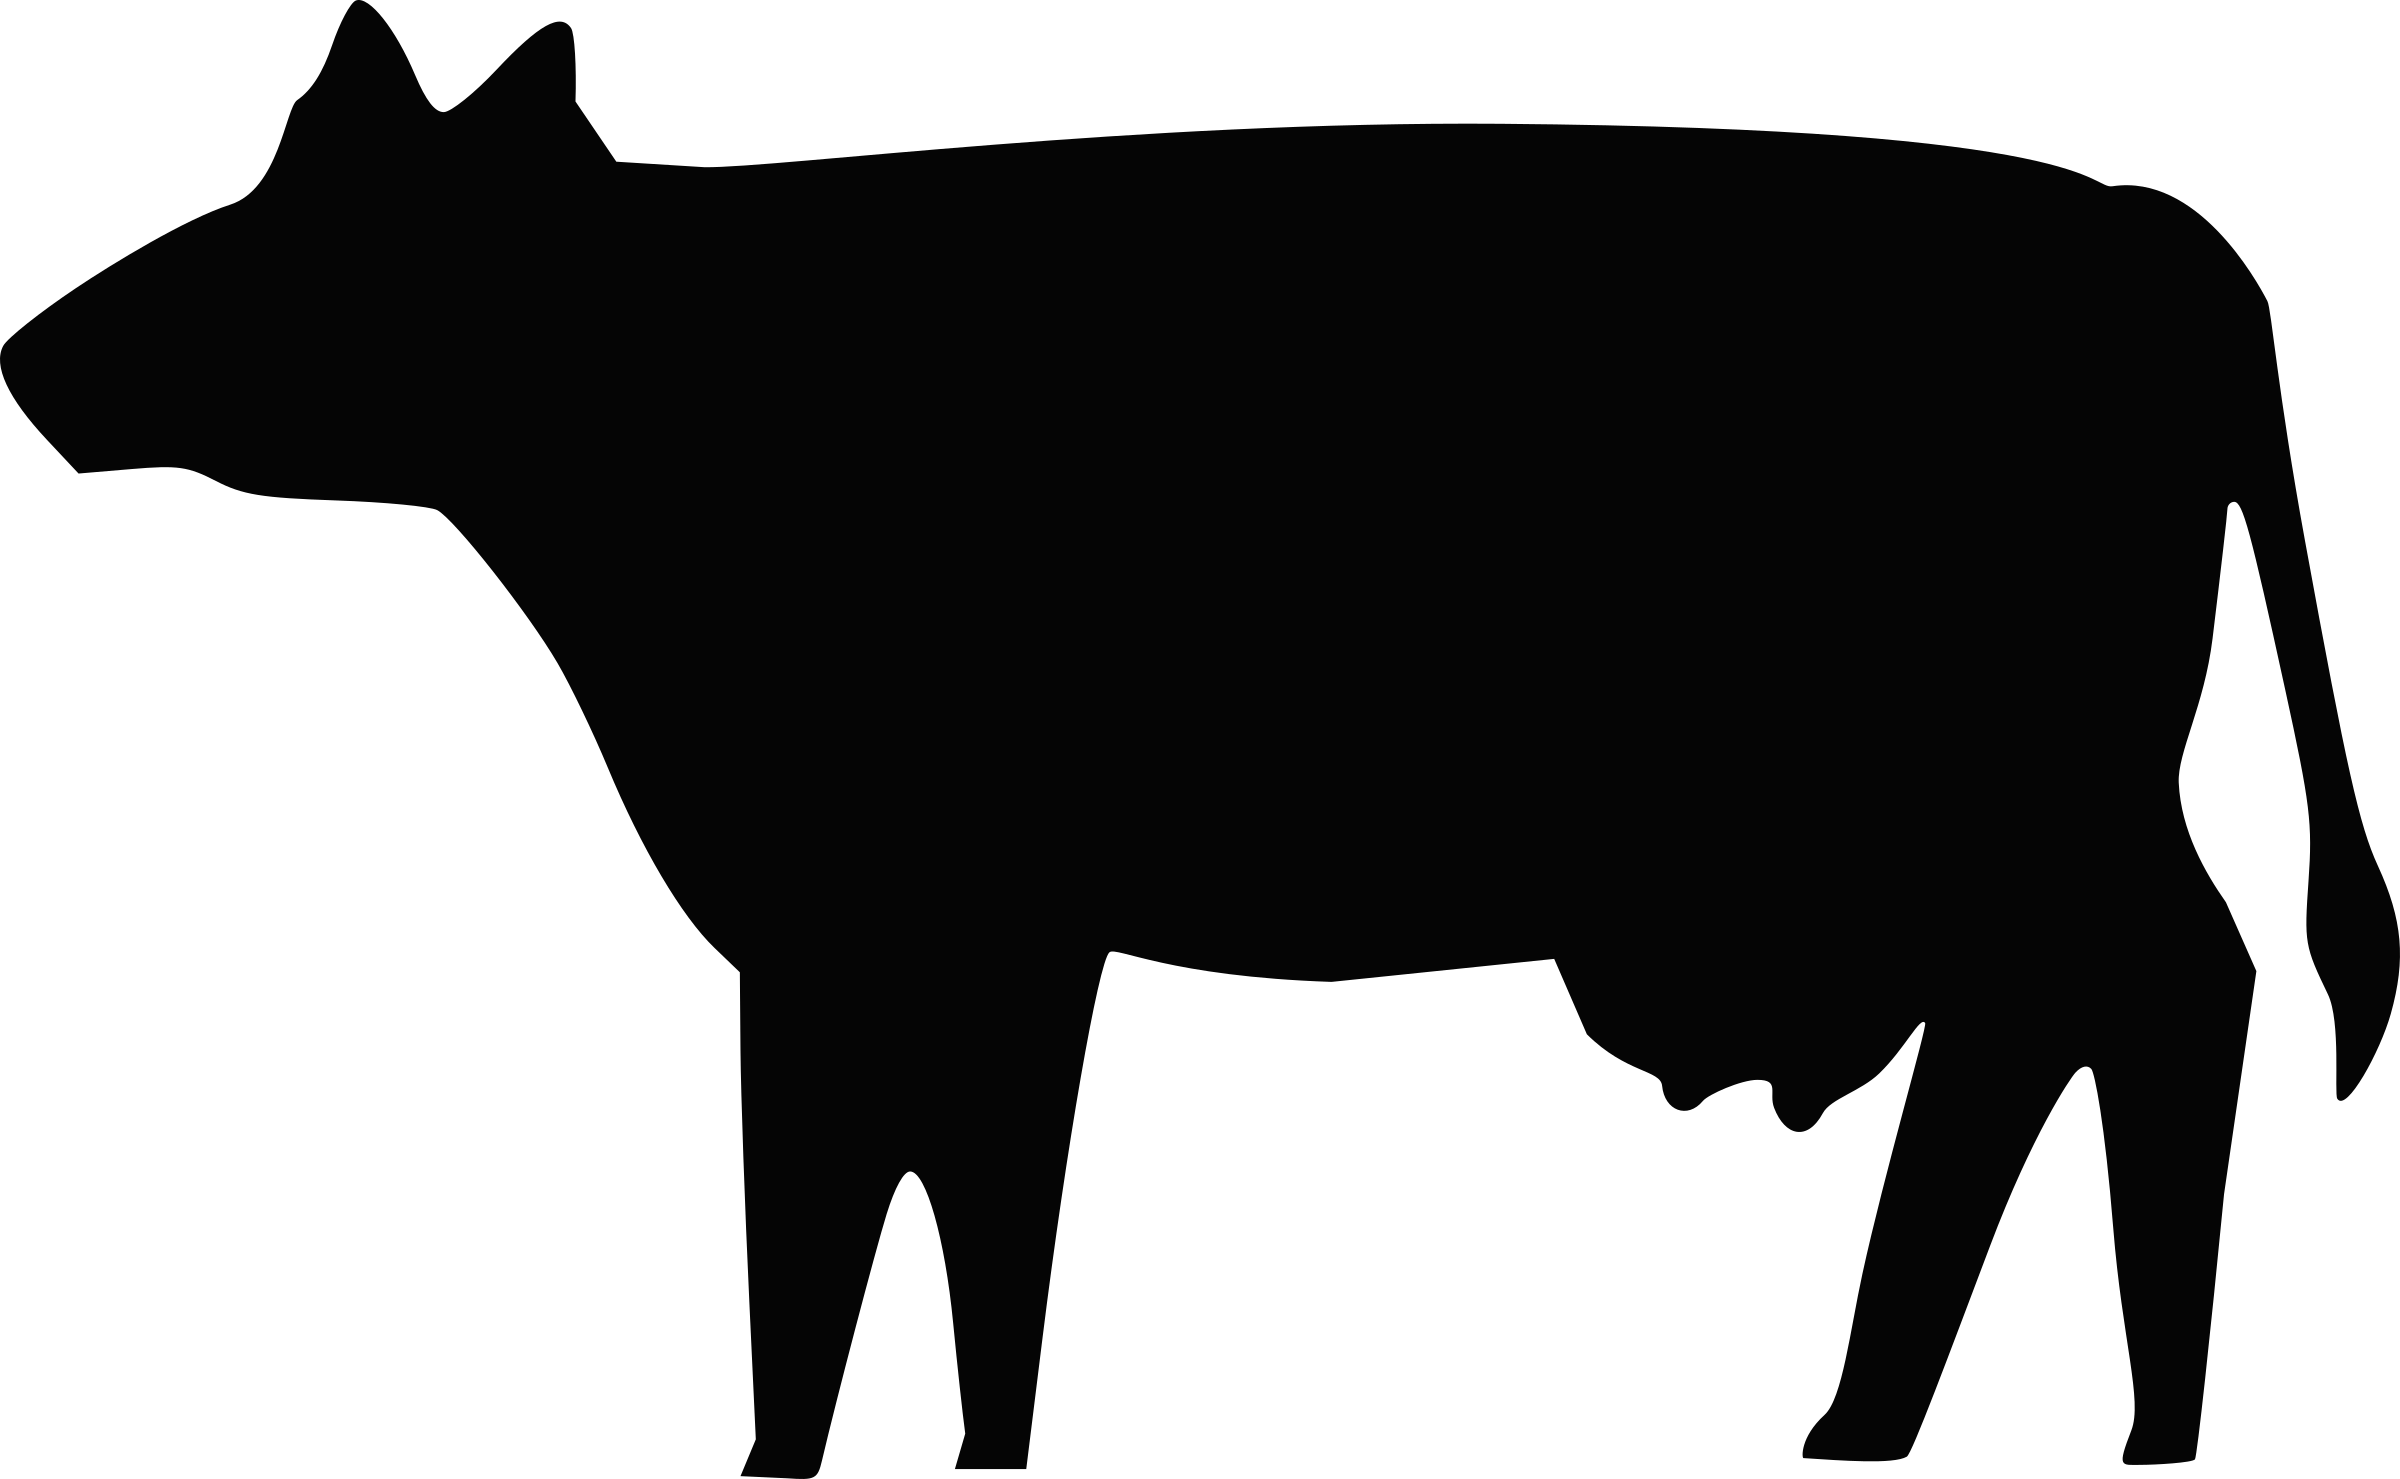 Cow Silhouette by Boort